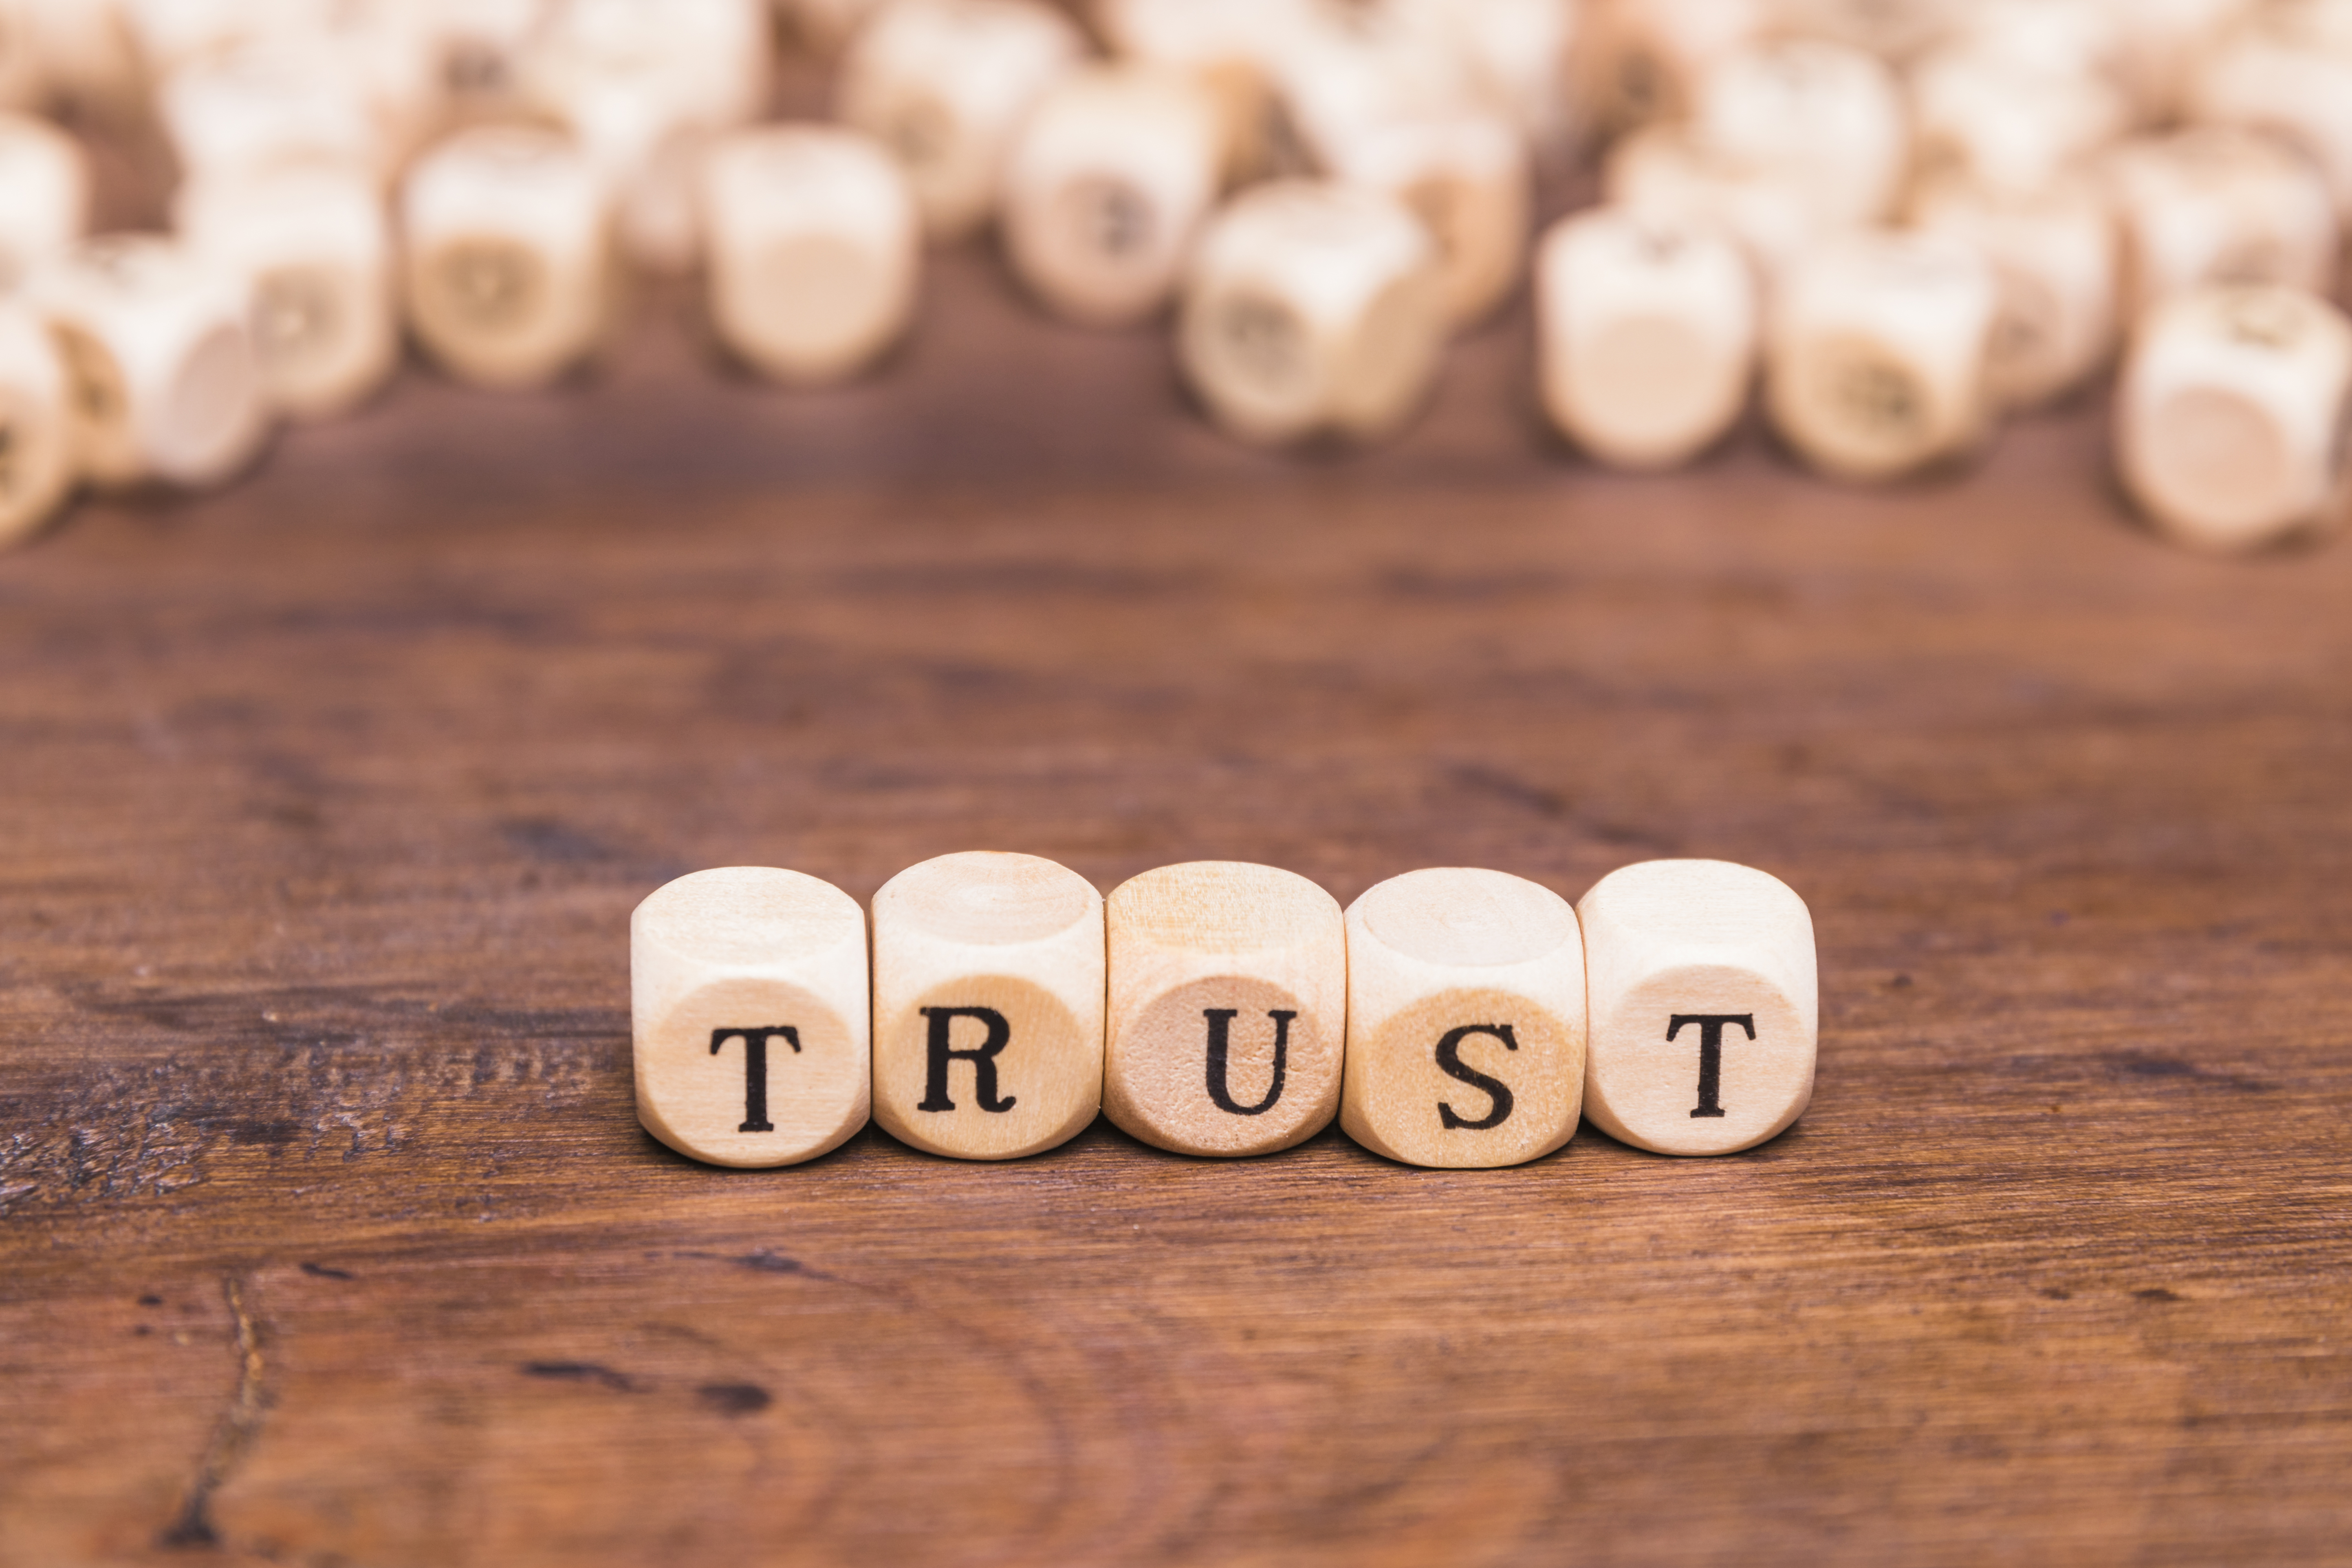 Ep#40: A matter of trust: rebuilding citizen trust, with Caroline Fisher - Part 2